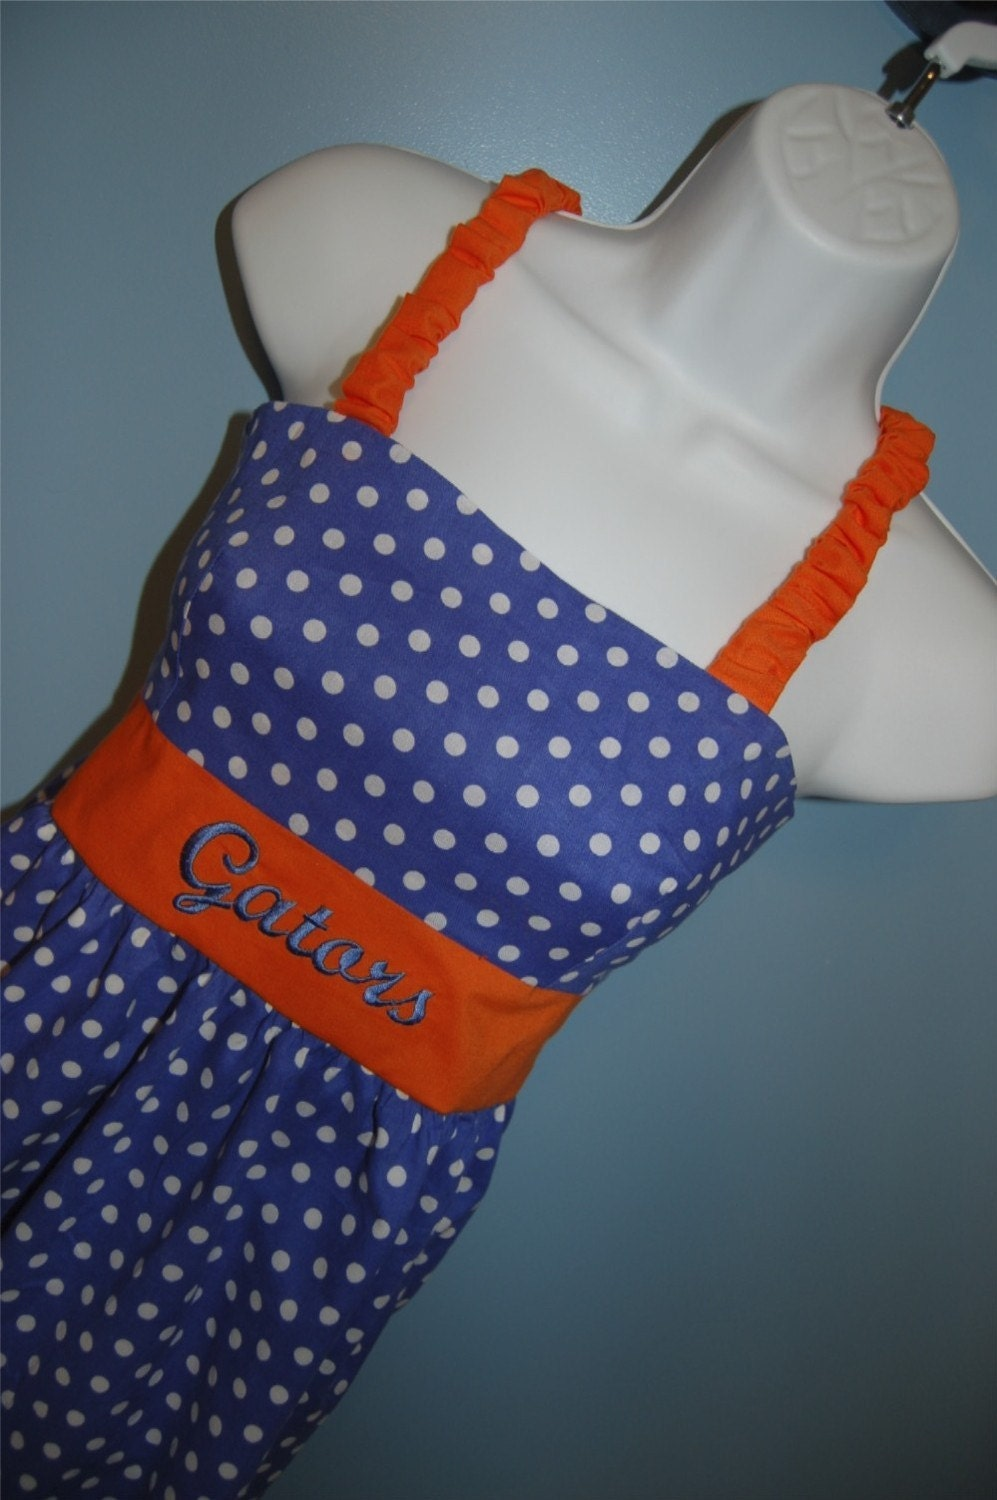 Handmade Go Gators Polka Dot Dress Womens Sizes XS to L